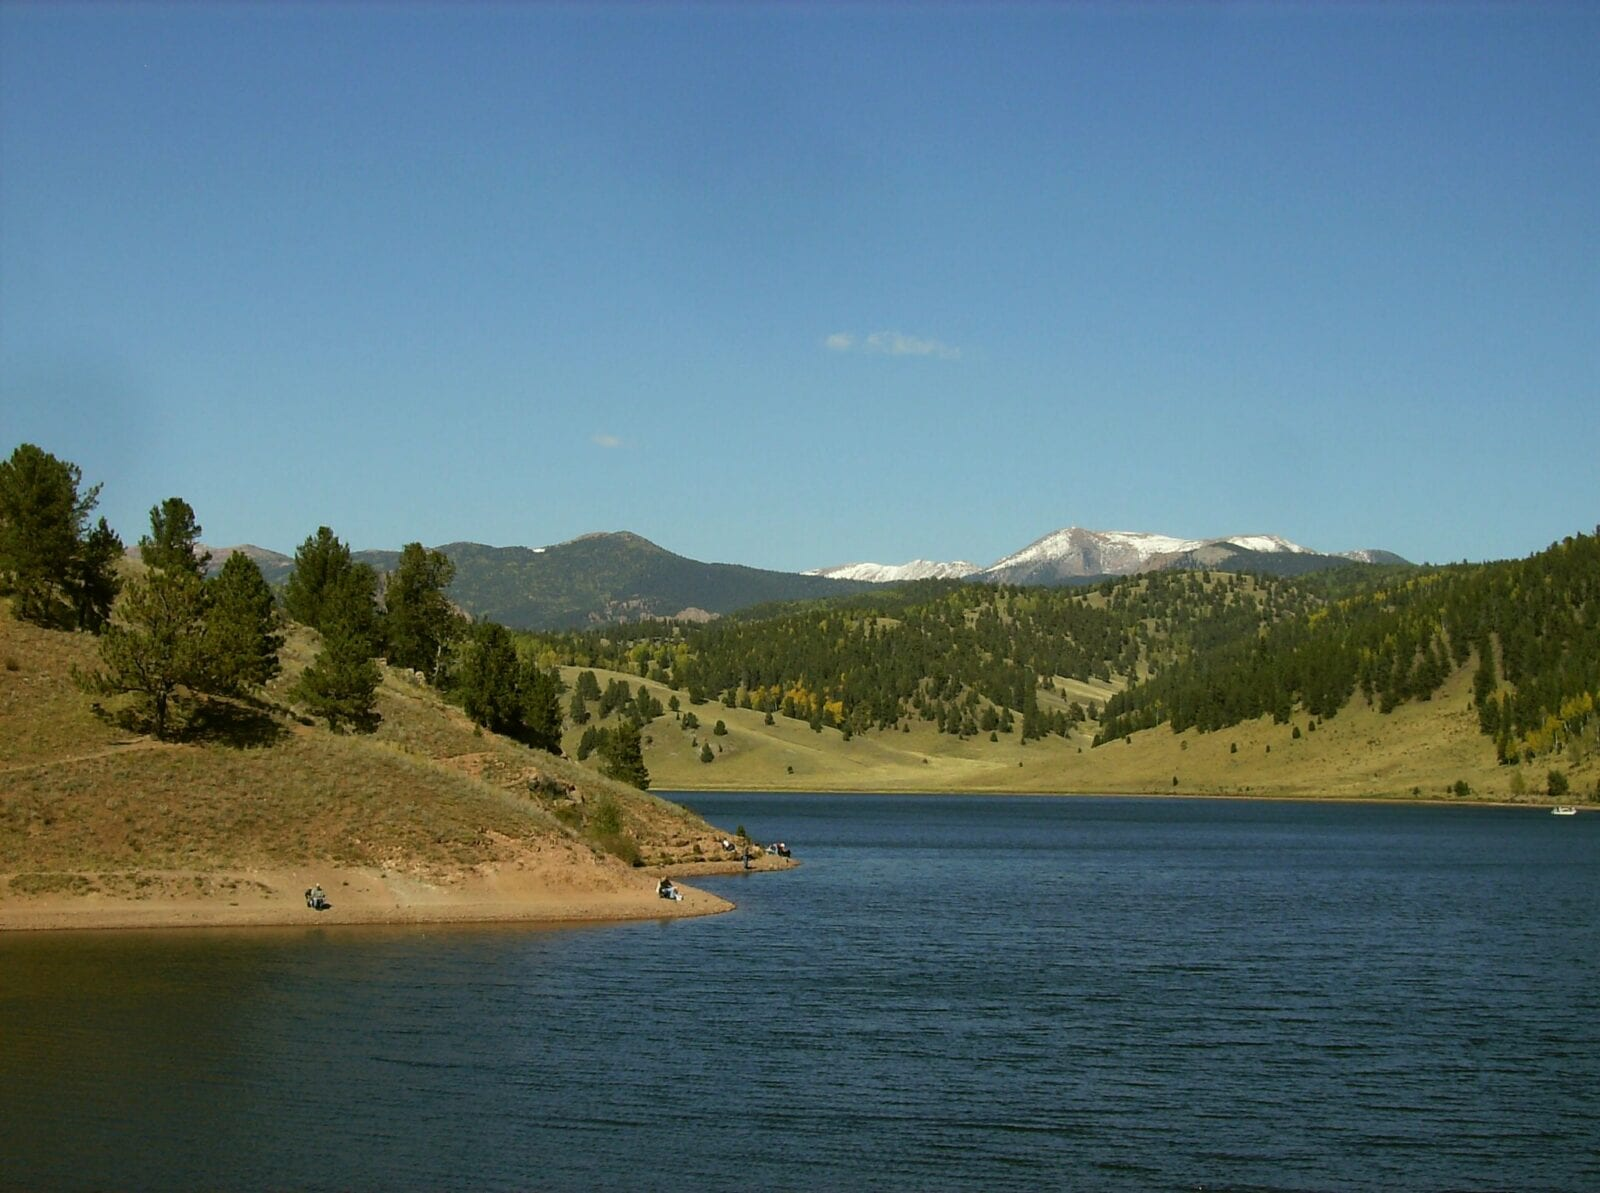 Image of the Skaguay Reservoir, south of Victor, Colorado